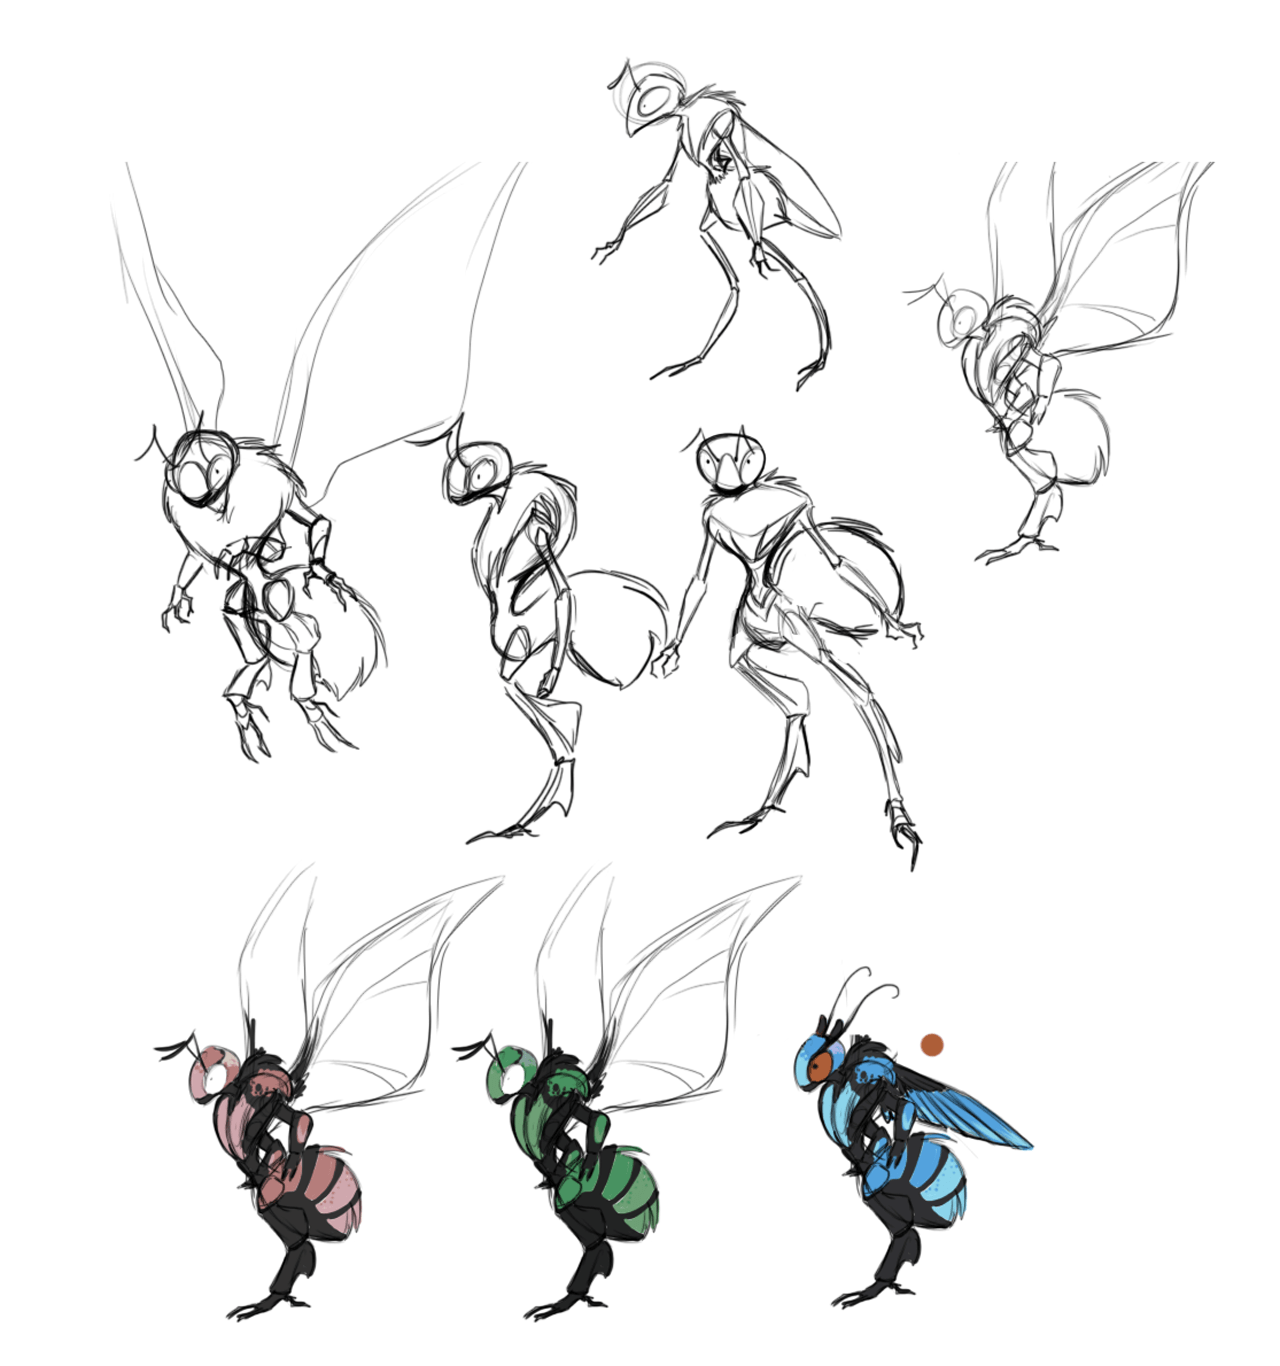 Concept sketches of the second alien species.